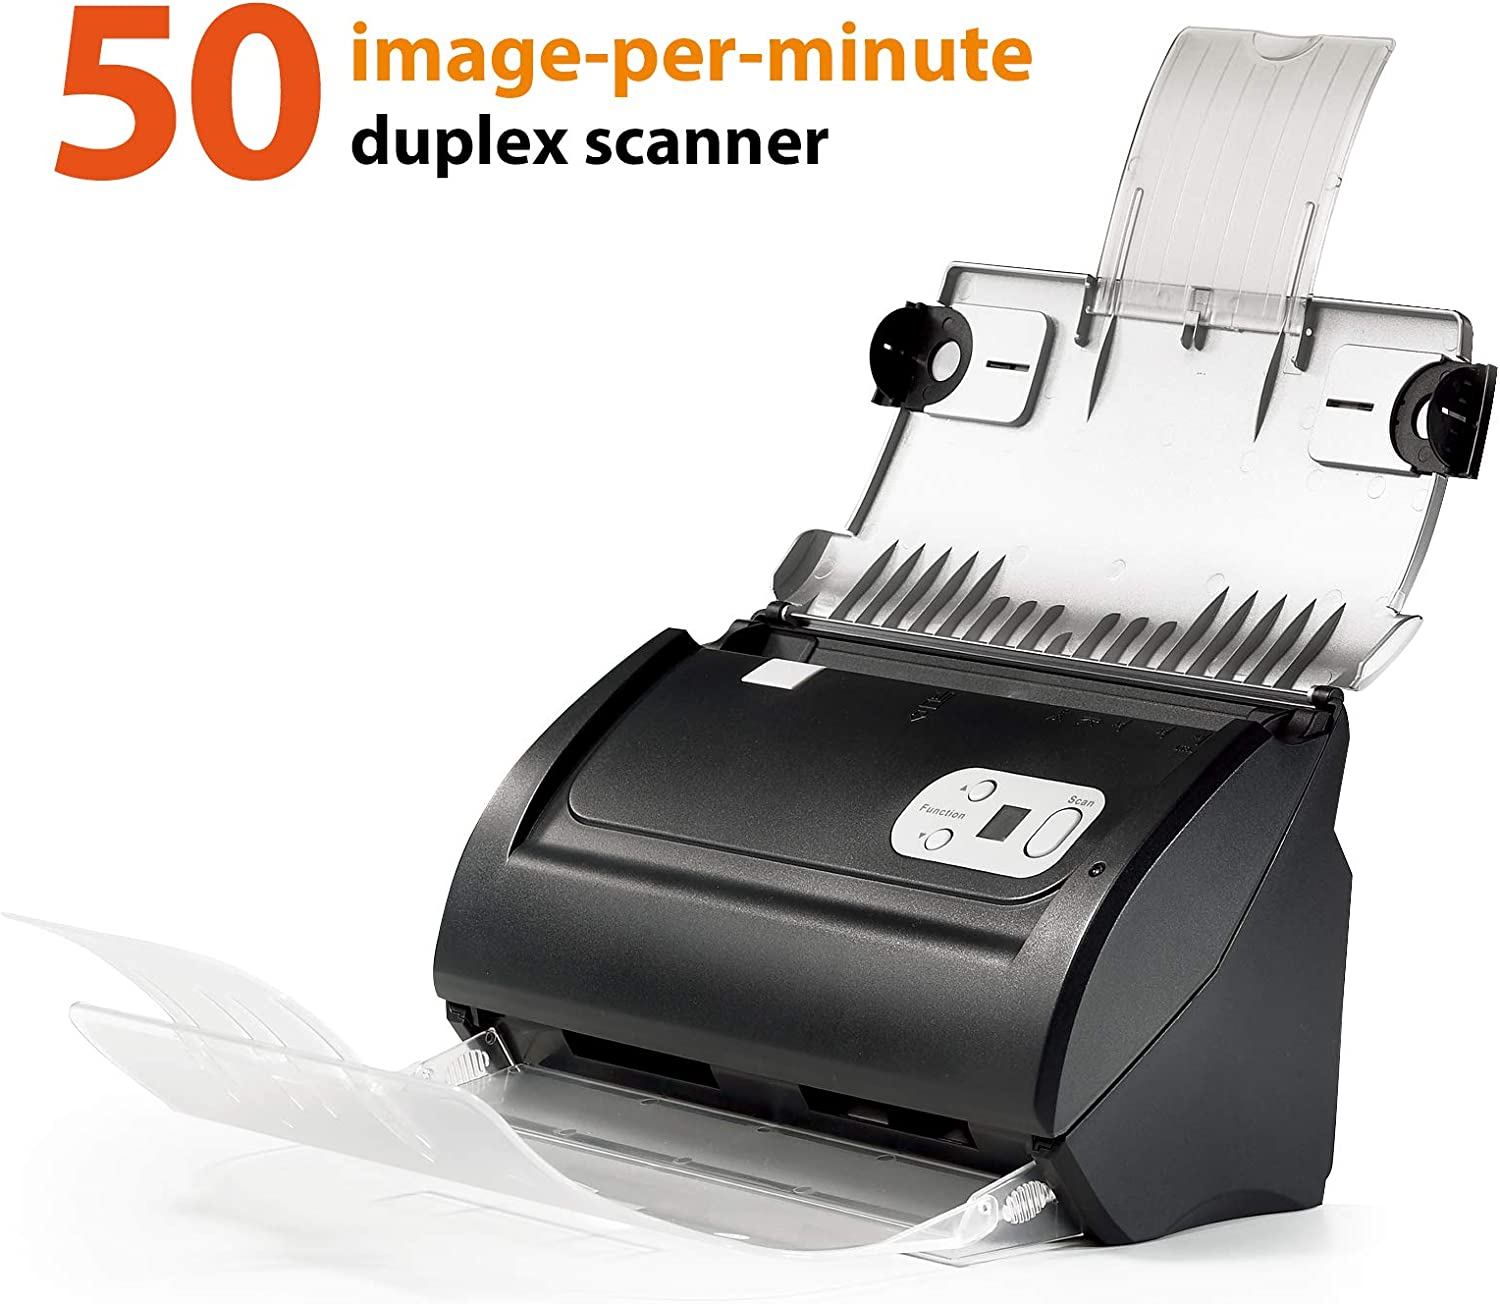 Plustek PS186 High Speed Document Scanner, with Auto Document Feeder (ADF). For Windows 7 / 8 / 10